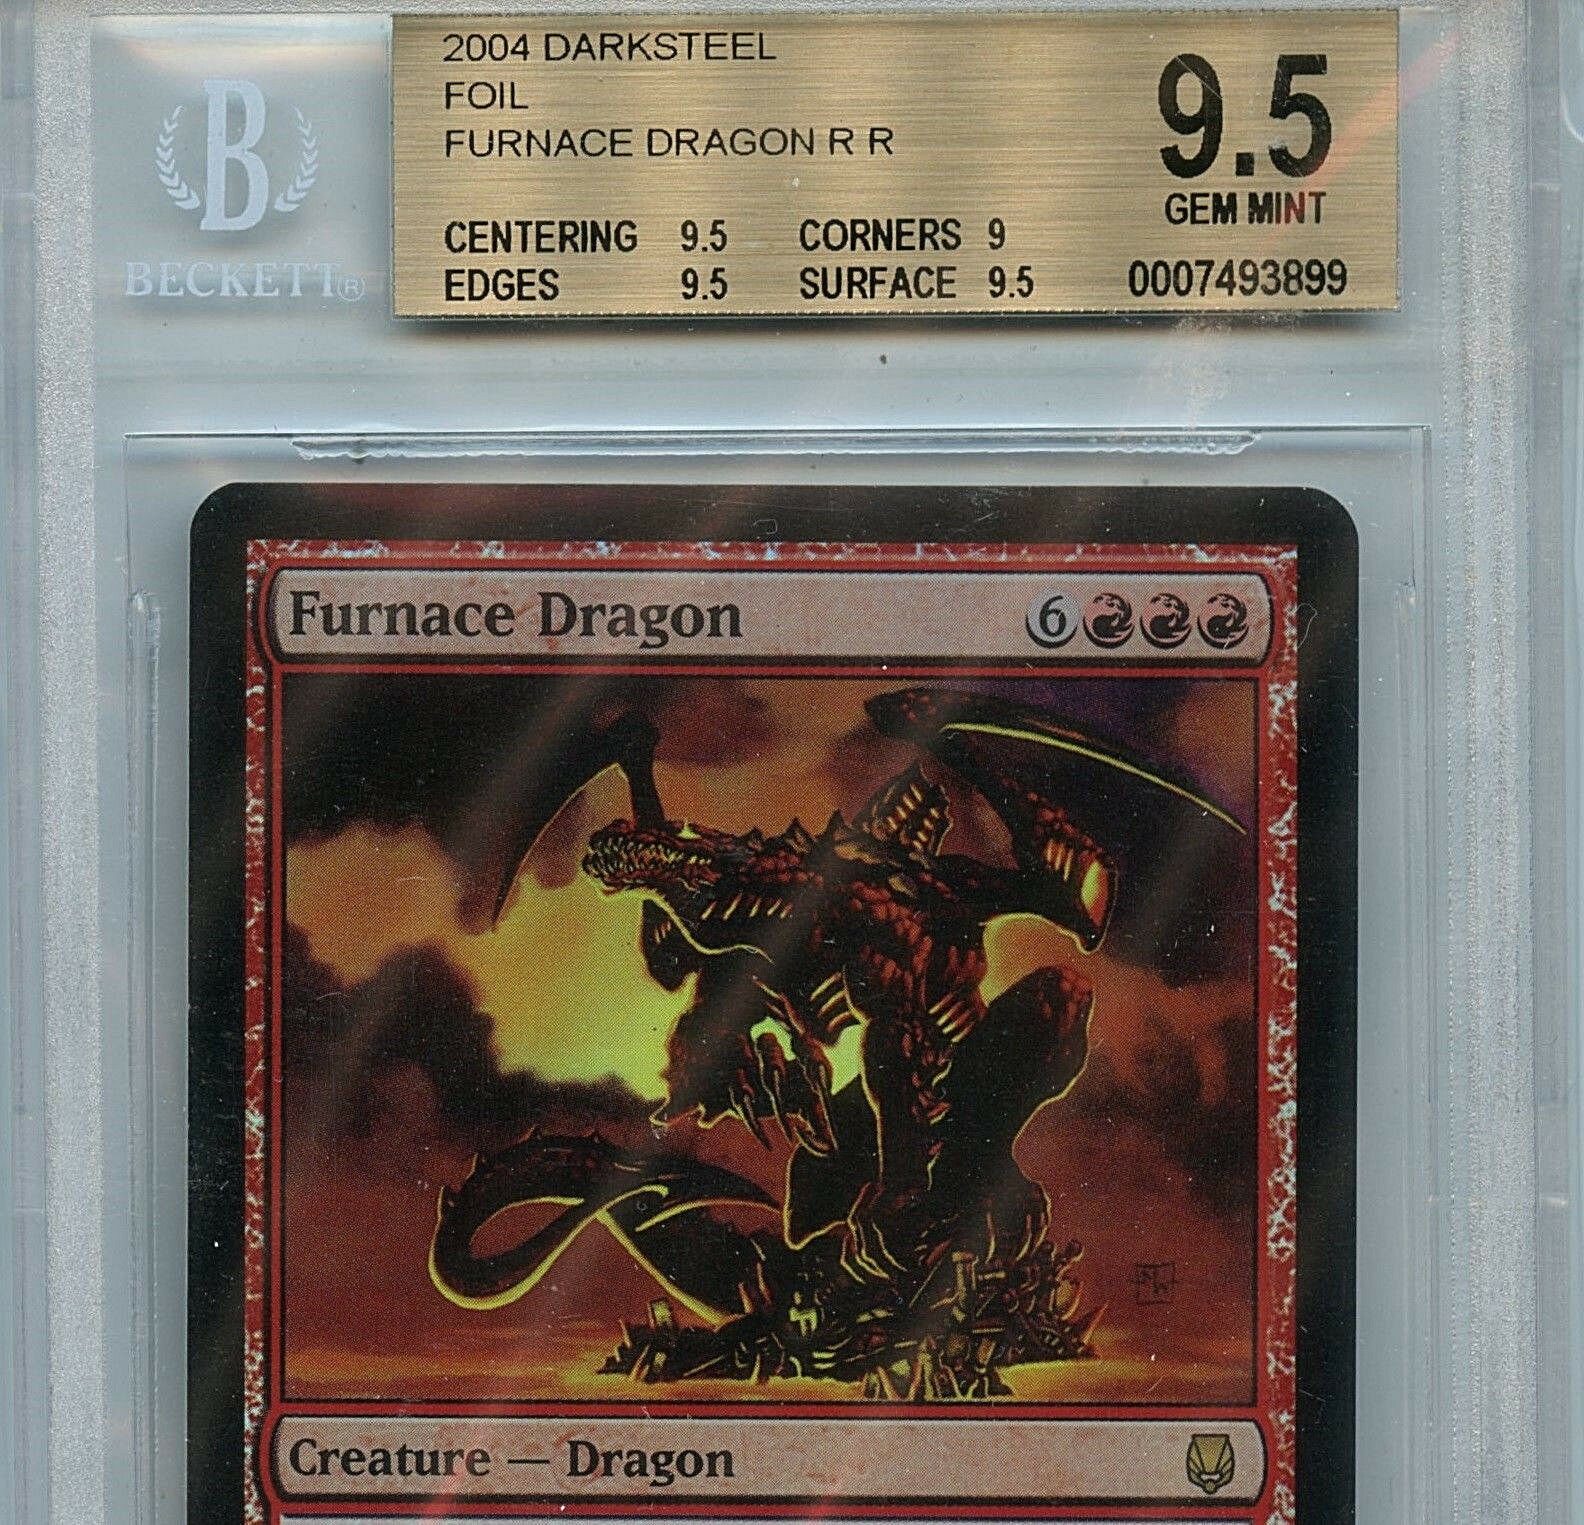 MTG Furnace Dragon BGS 9.5 Gem Gem Gem Mint Darksteel Foil Magic Card Amricons  3899 5136ad